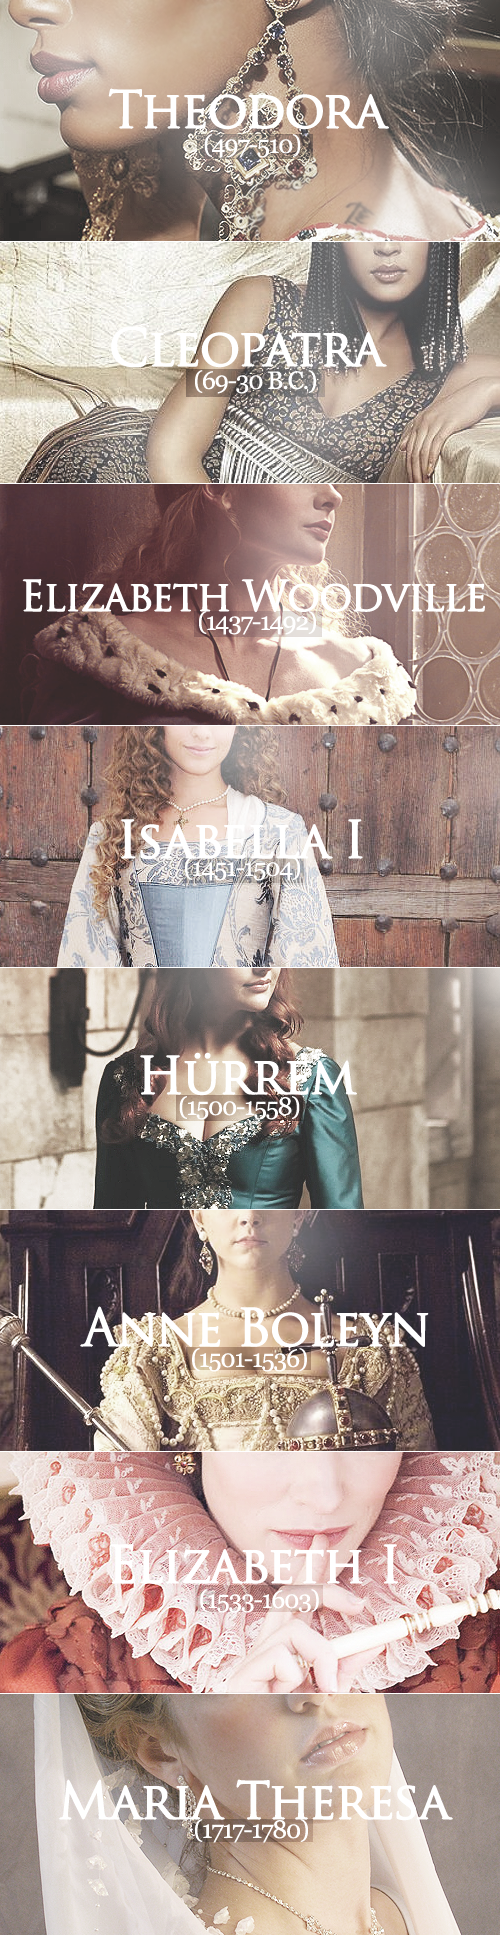 powerful queens throughout history